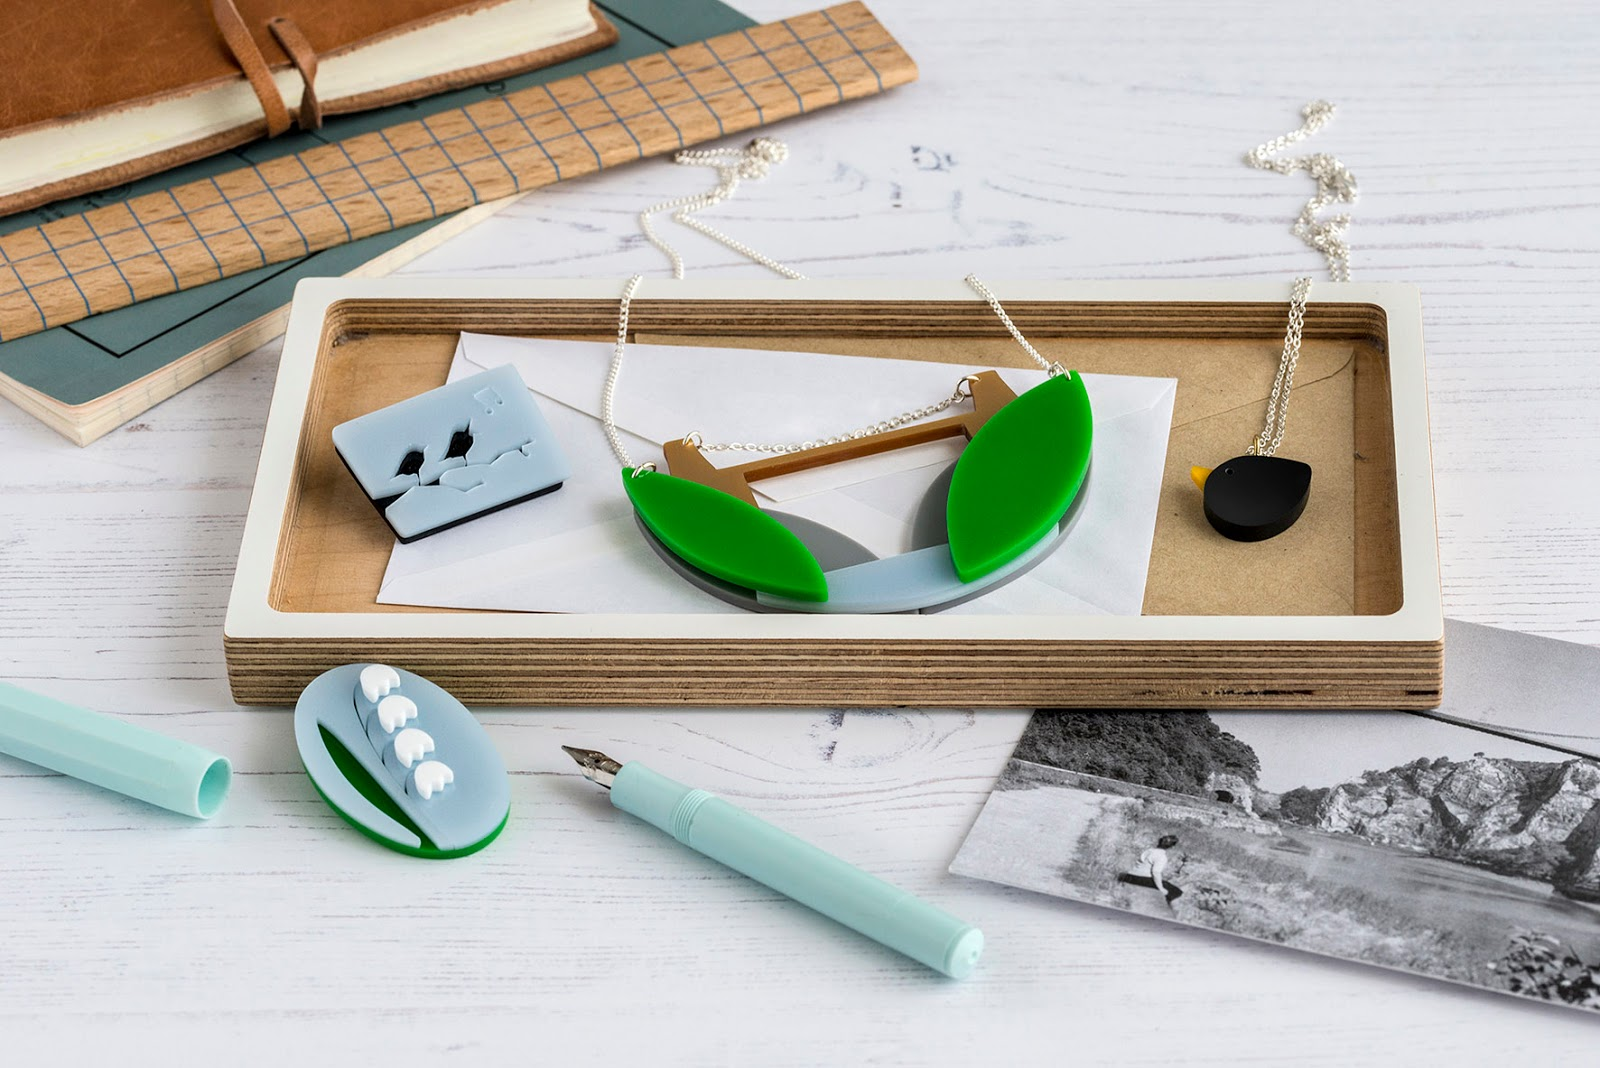 One of the most popular range of jewellery by I Am Acrylic includes their Lily of the Valley brooch, as well as the Clifton Suspension Bridge necklace and blackbird necklace.